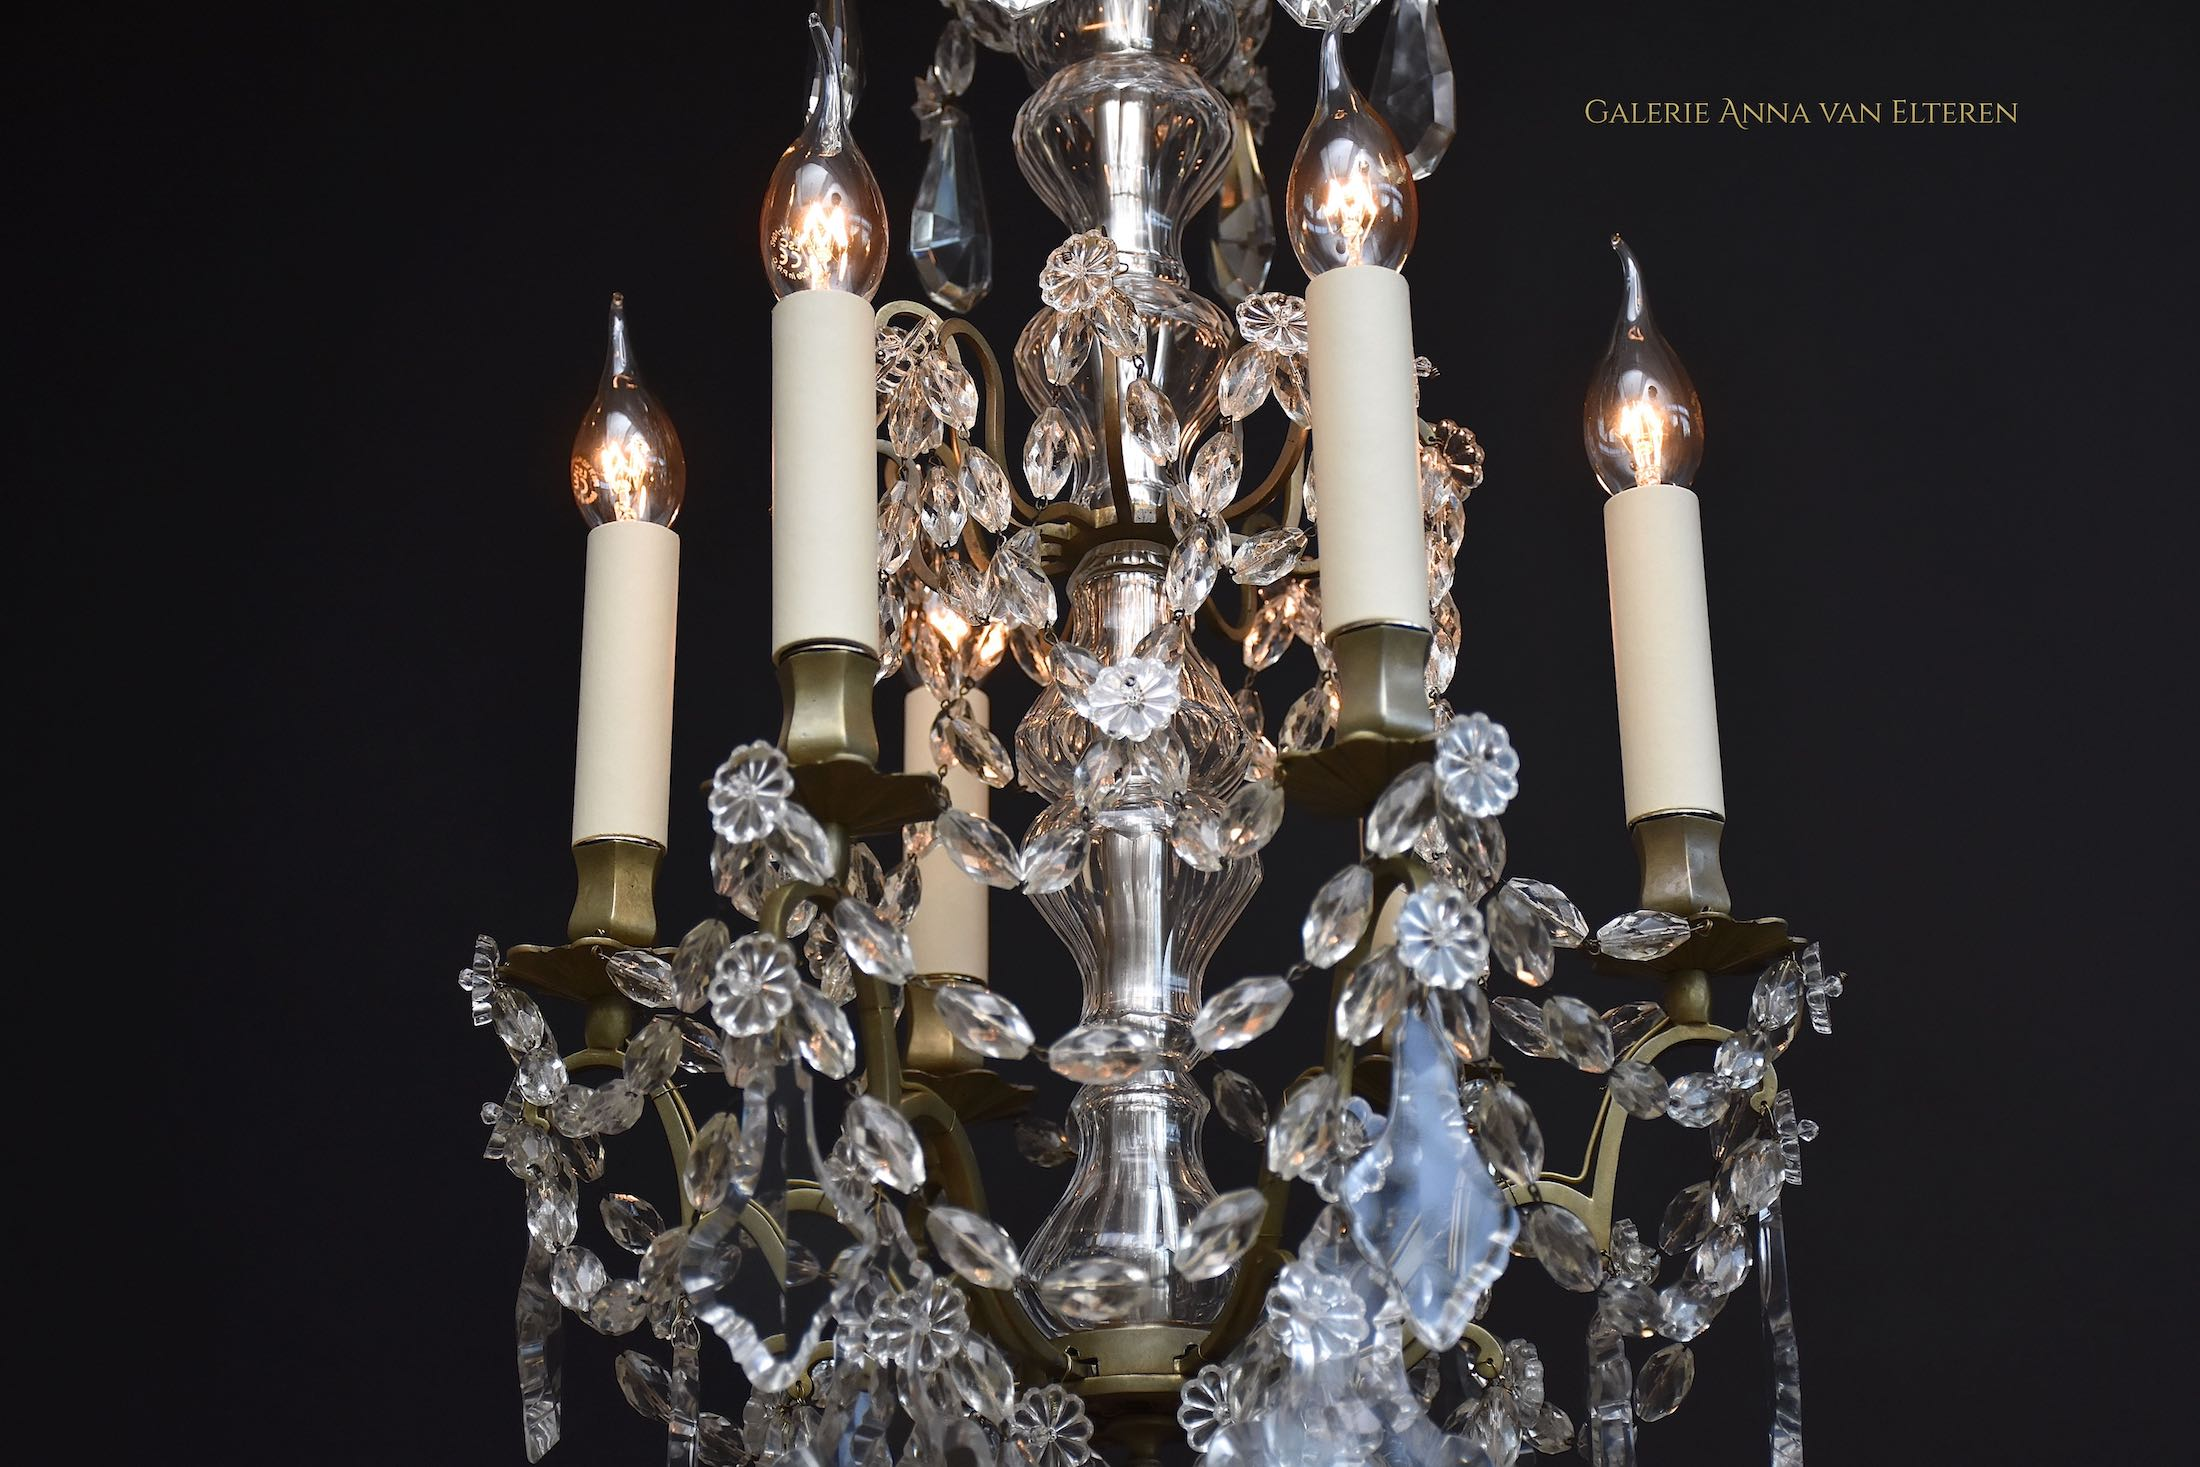 Antique French chandelier in the style of Louis XVI